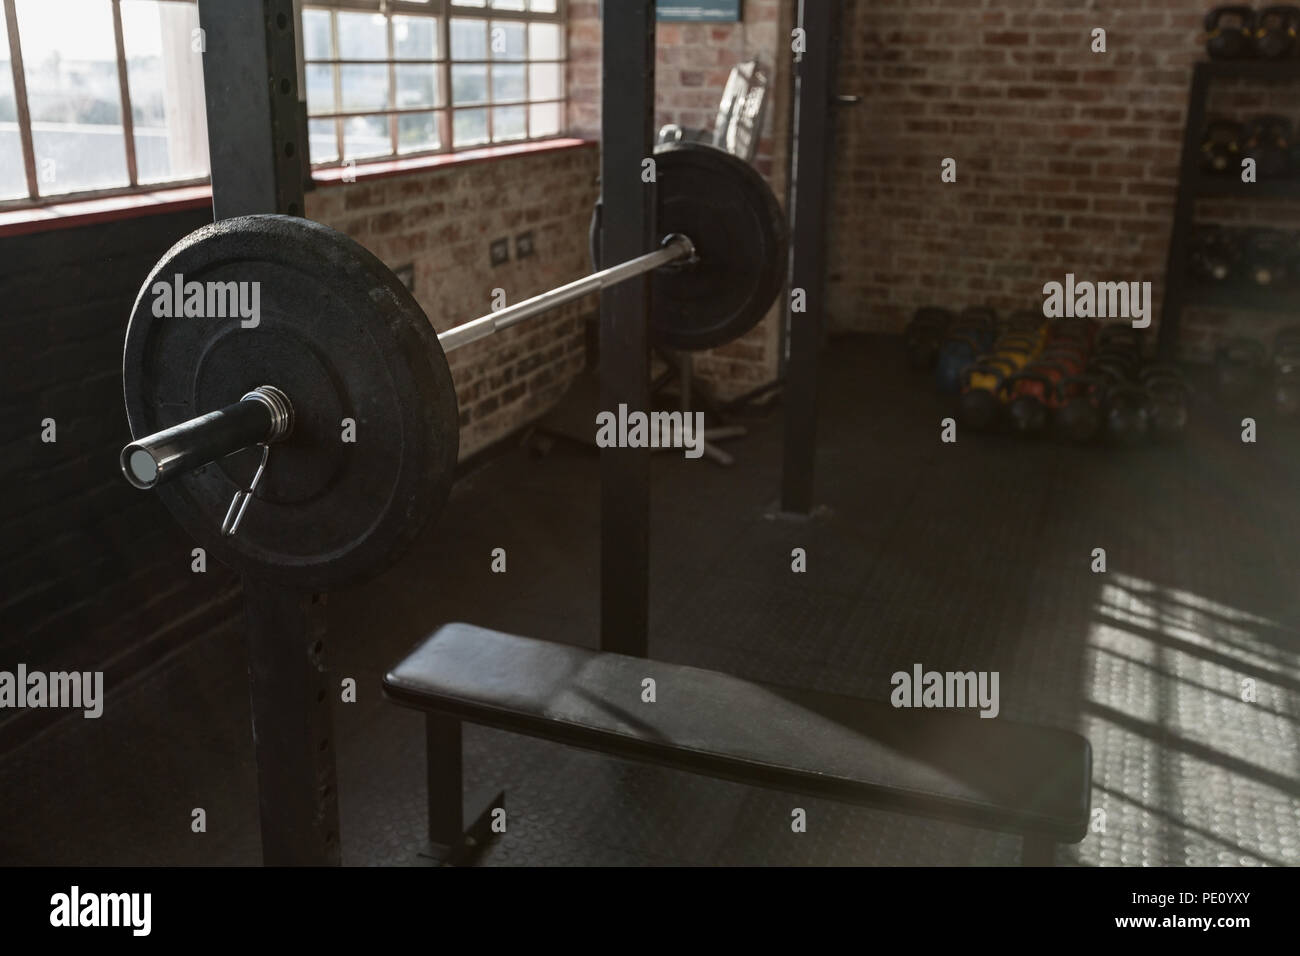 Barbell in the fitness studio - Stock Image